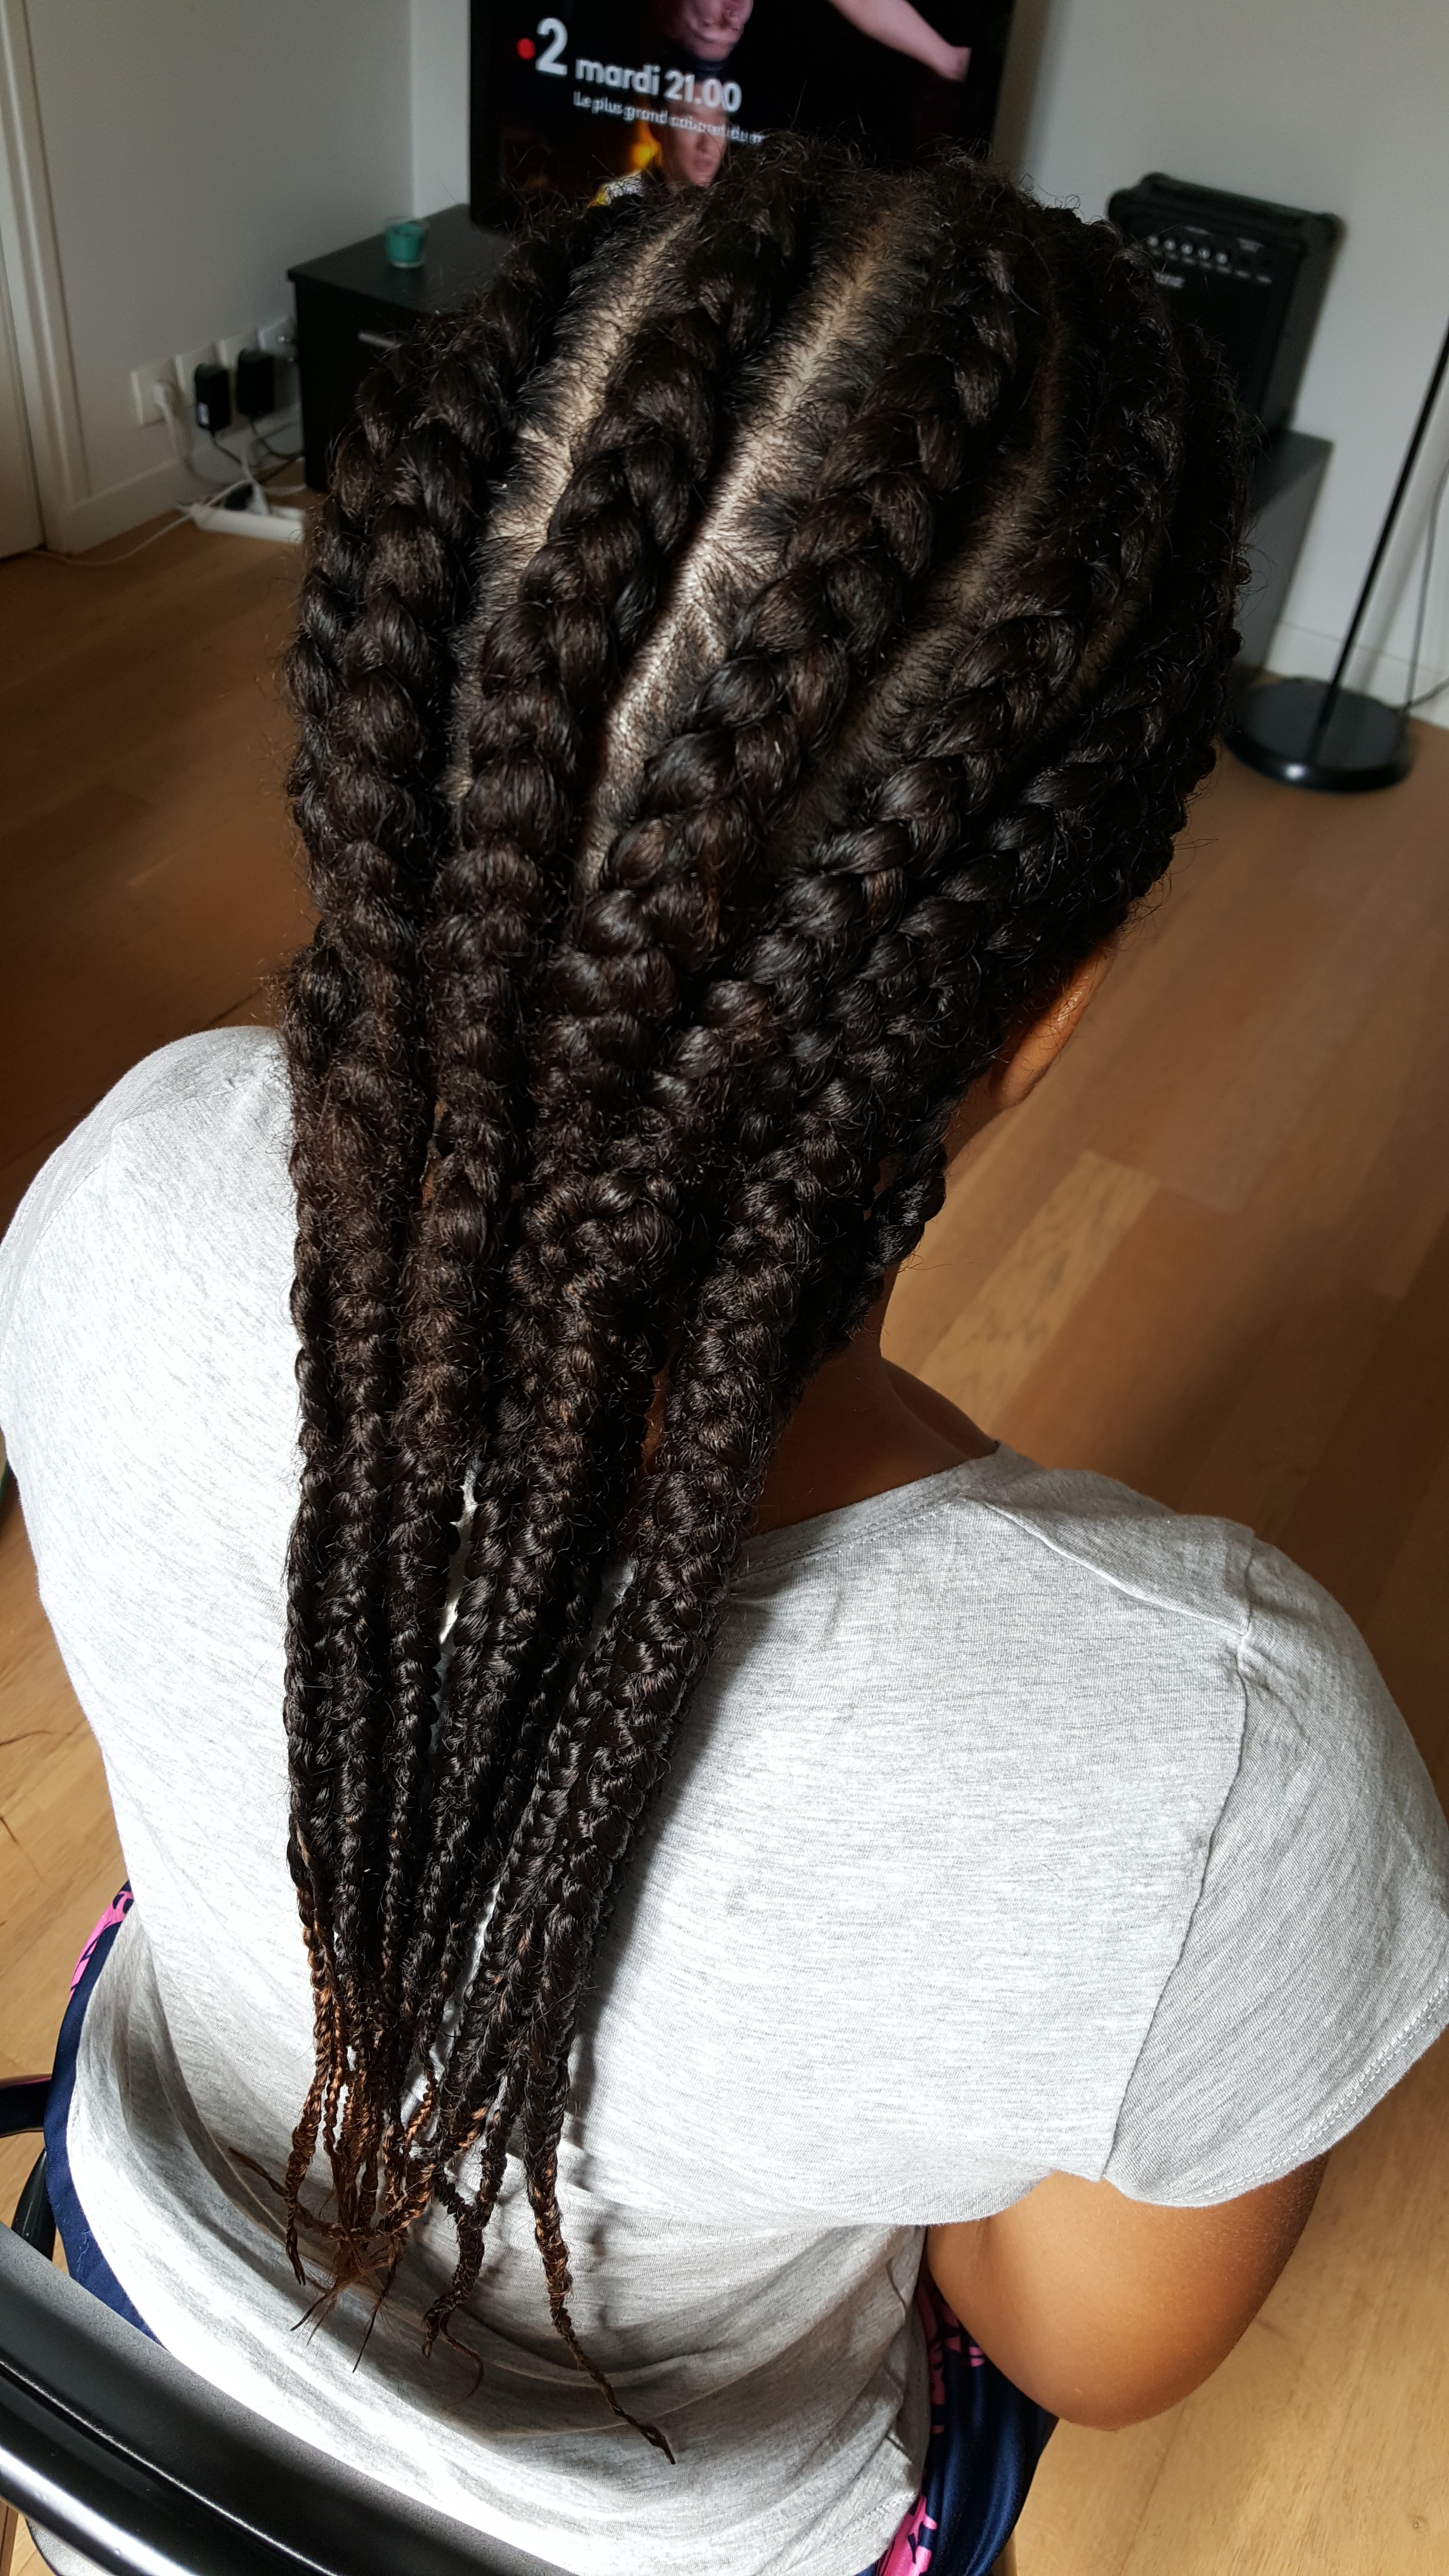 salon de coiffure afro tresse tresses box braids crochet braids vanilles tissages paris 75 77 78 91 92 93 94 95 TAWZIOEI